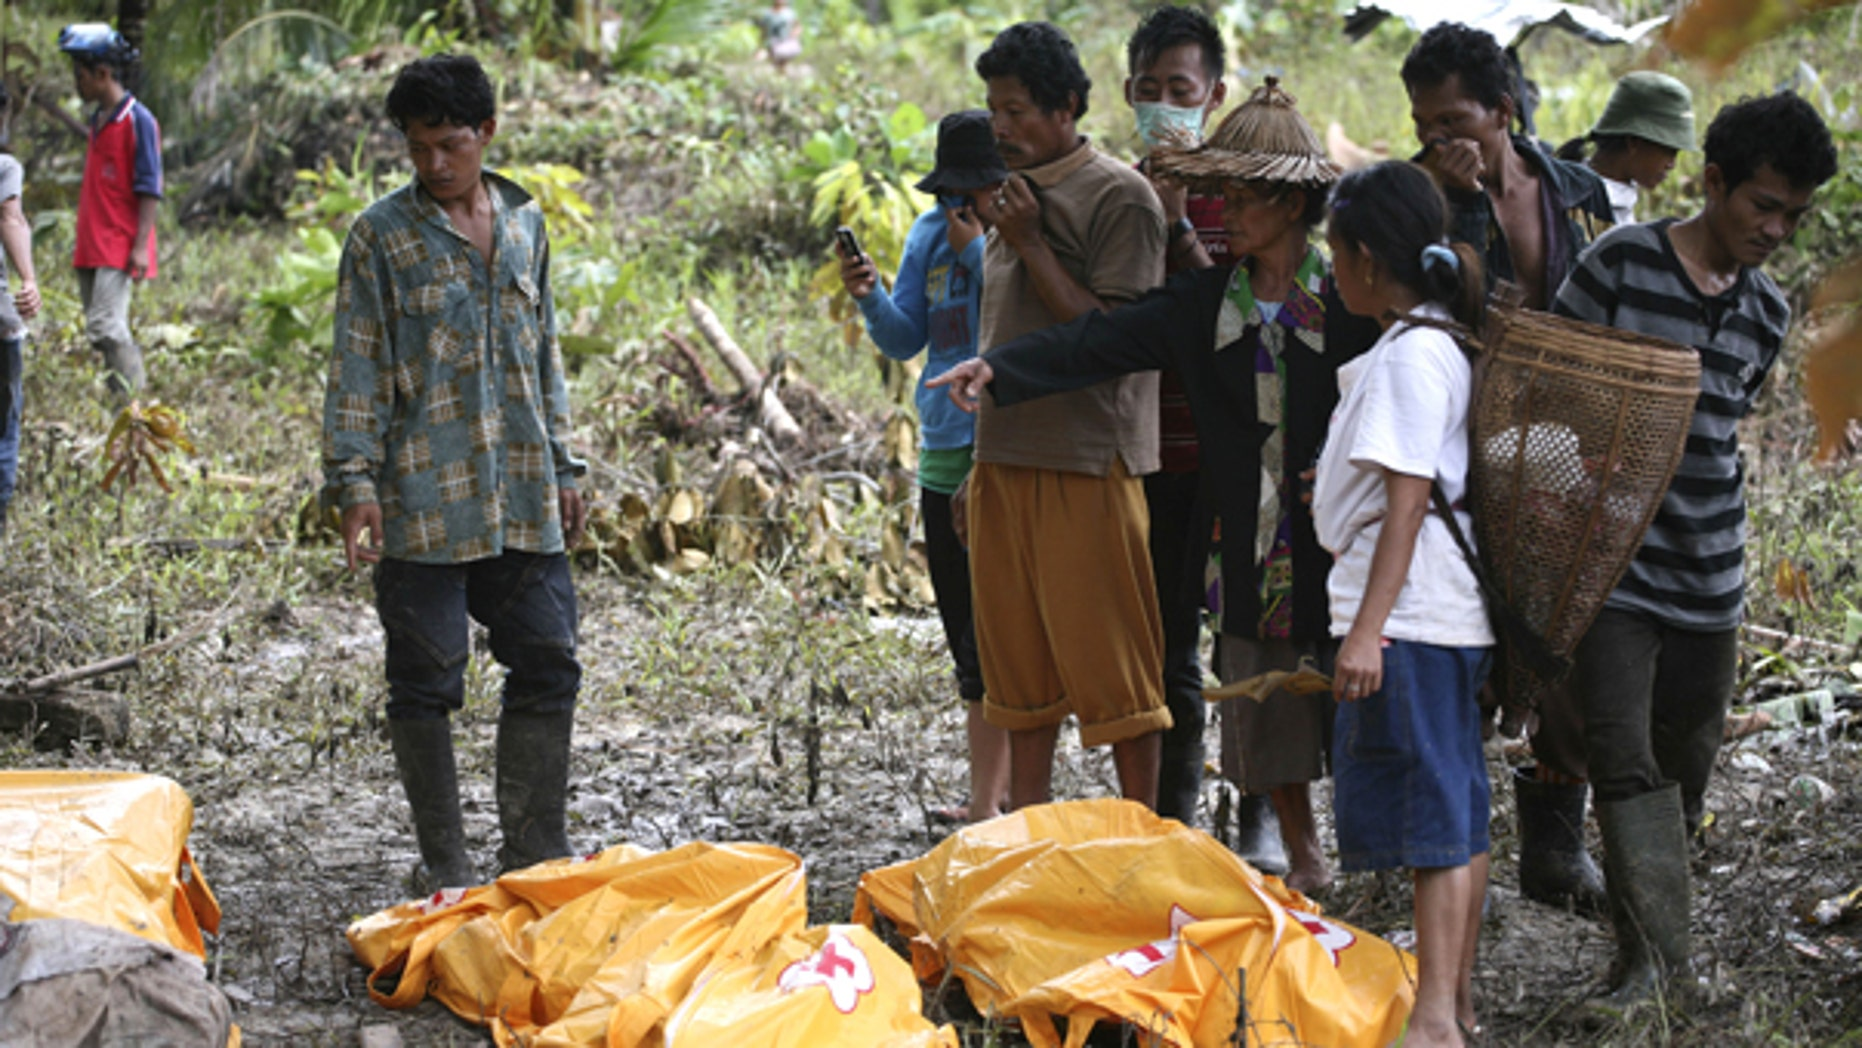 Oct. 29: Survivors look at the body of their family member who died in a tsunami at Munte, Indonesia. he toll from Monday's tsunami rose to more than 400 on Friday as officials found more bodies, and about 300 people were still missing, according to a provincial disaster management center official.